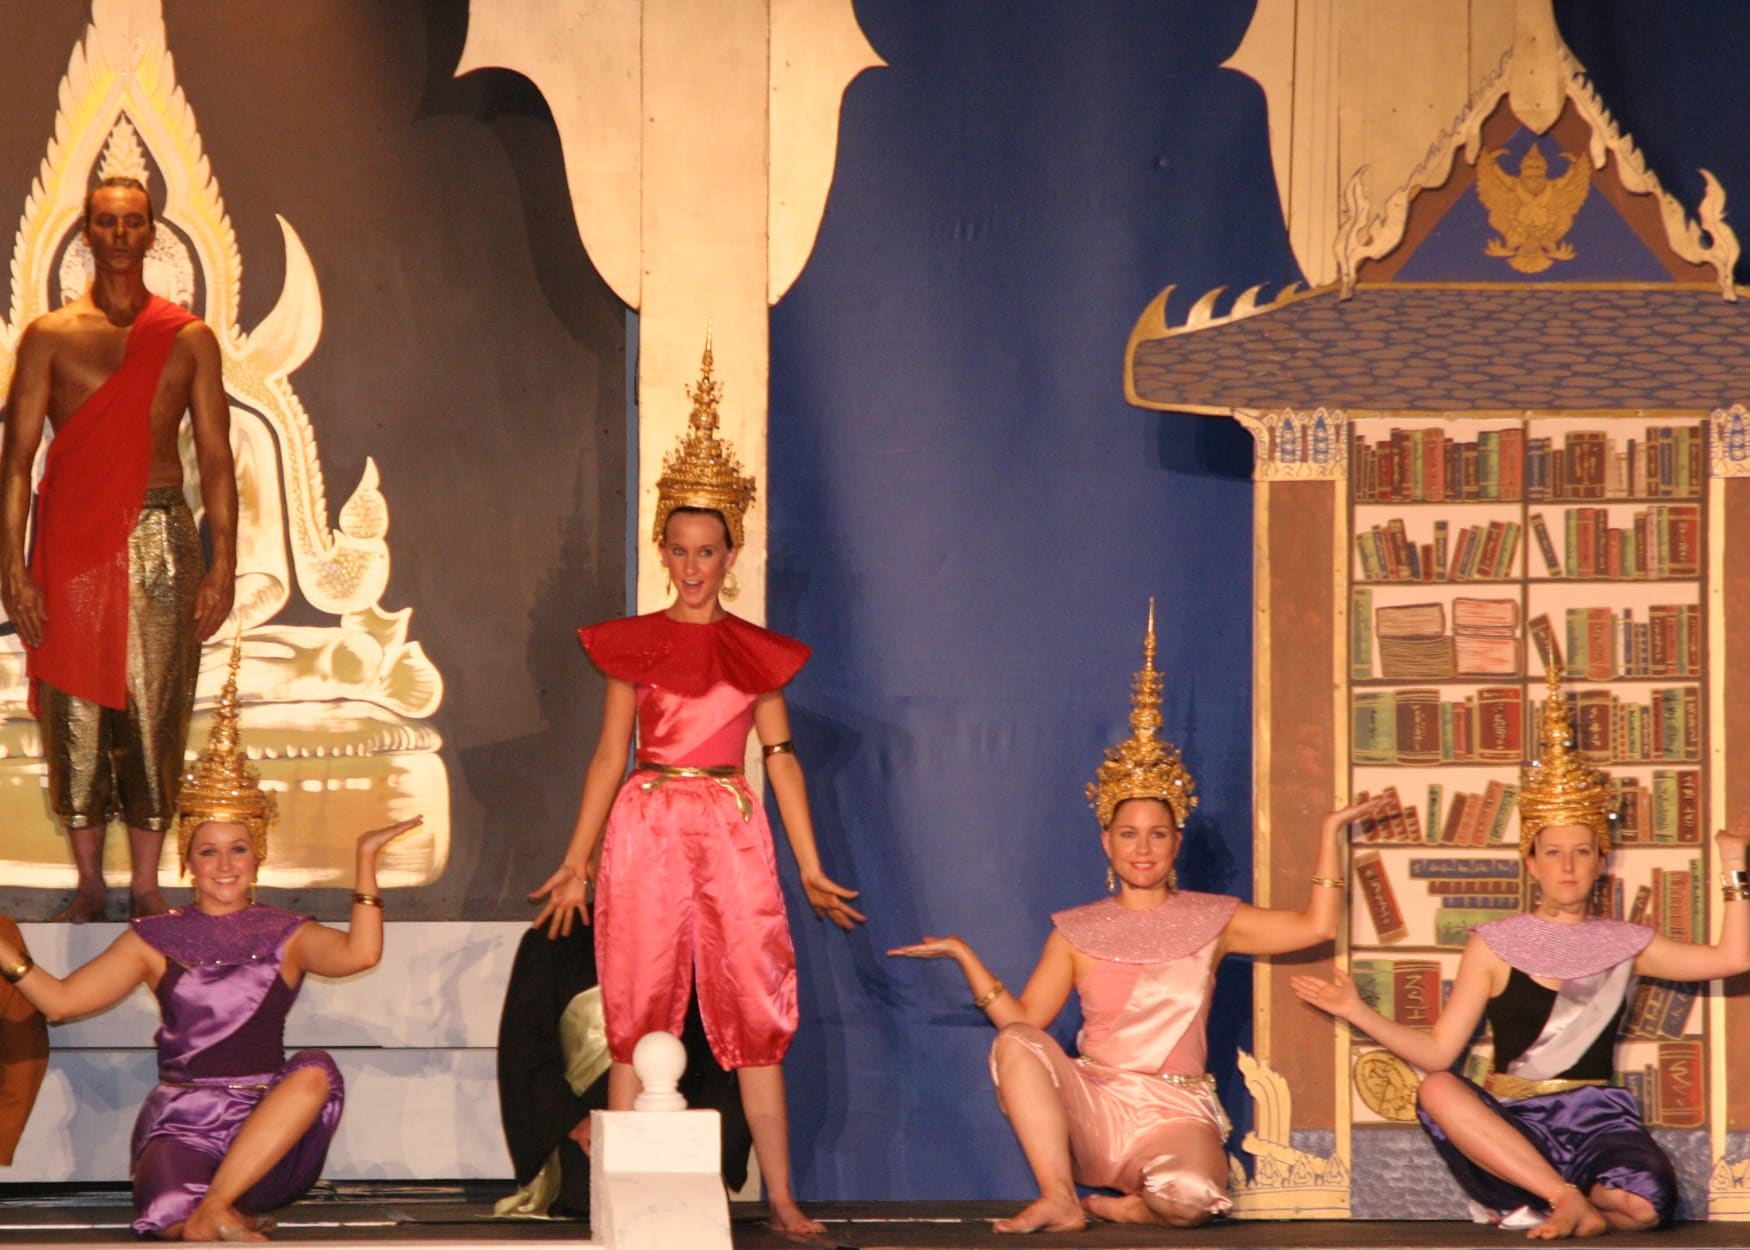 King and I 483.jpg